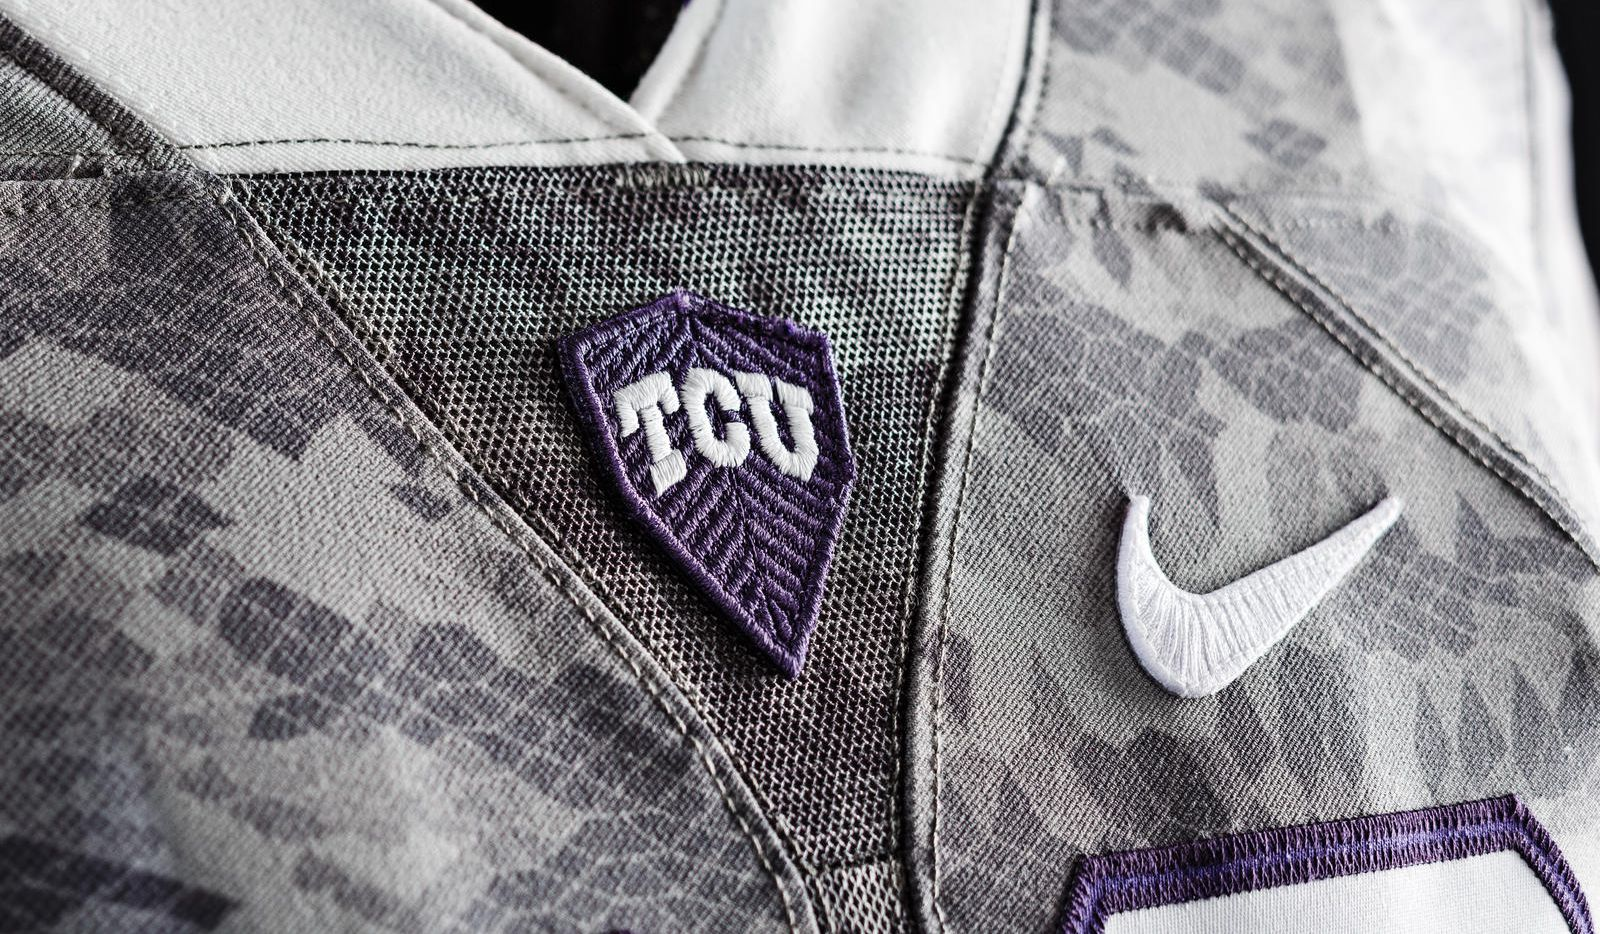 pretty nice a664d d303a With TCU debuting 'scaly' uniforms, Horned Frogs know ...